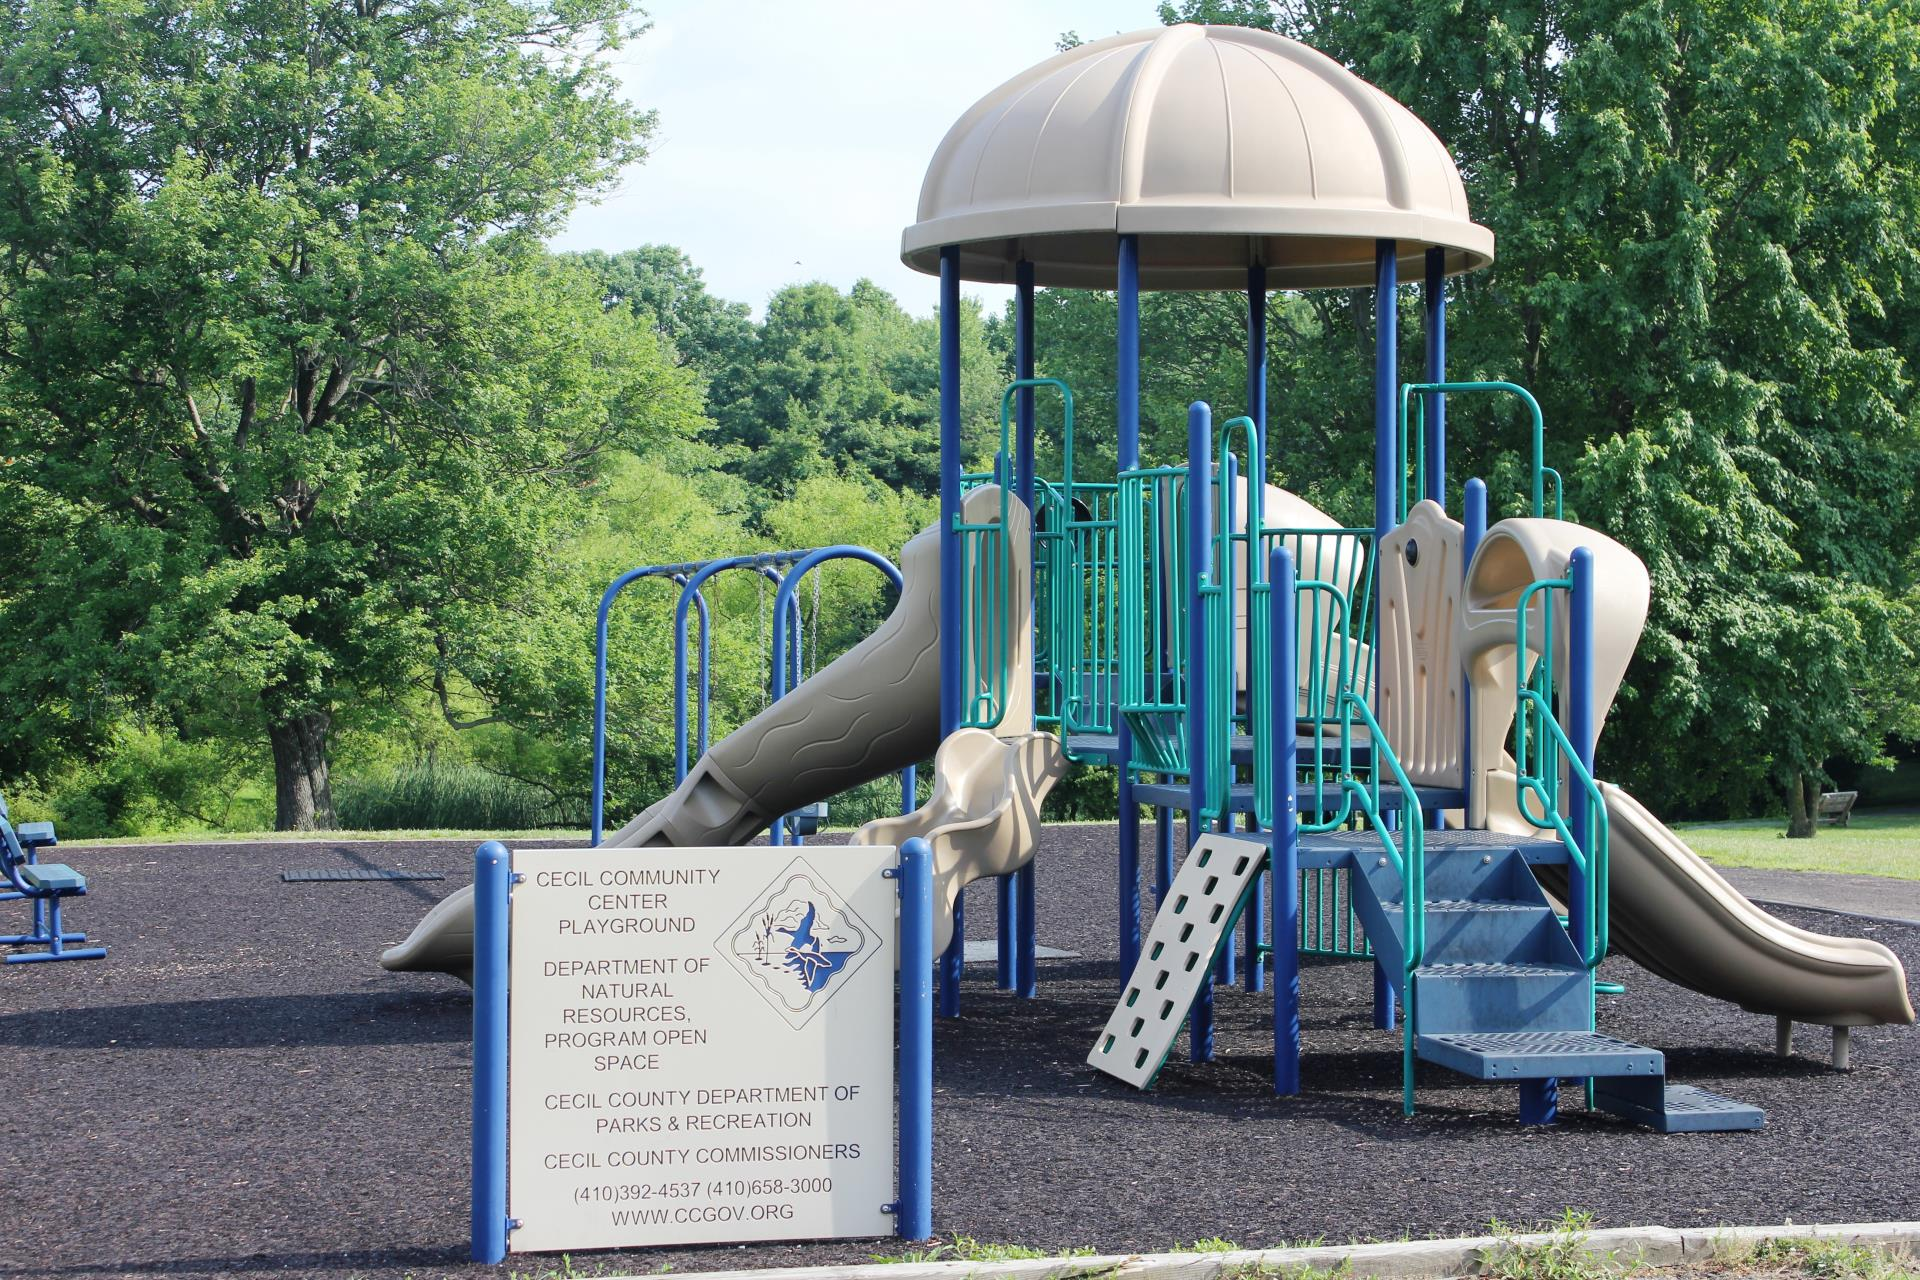 Cecil Community Center Playground